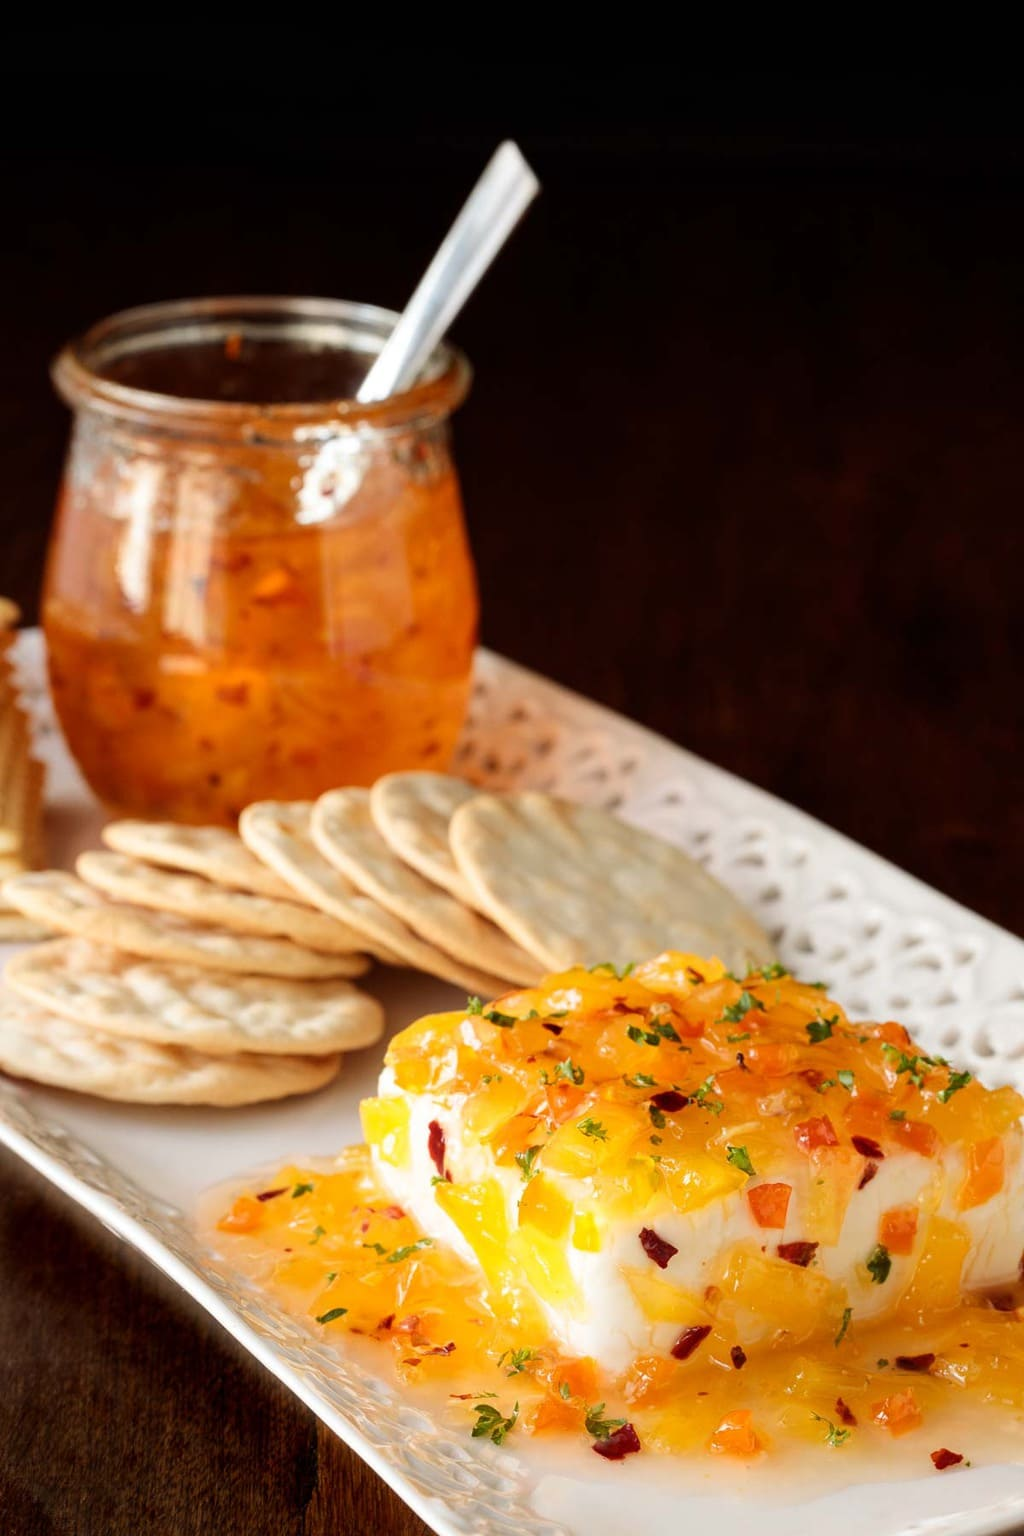 Photo of a white tray filled with crackers, a square of cream cheese and a jar of Pineapple Habanero Pepper Jelly.